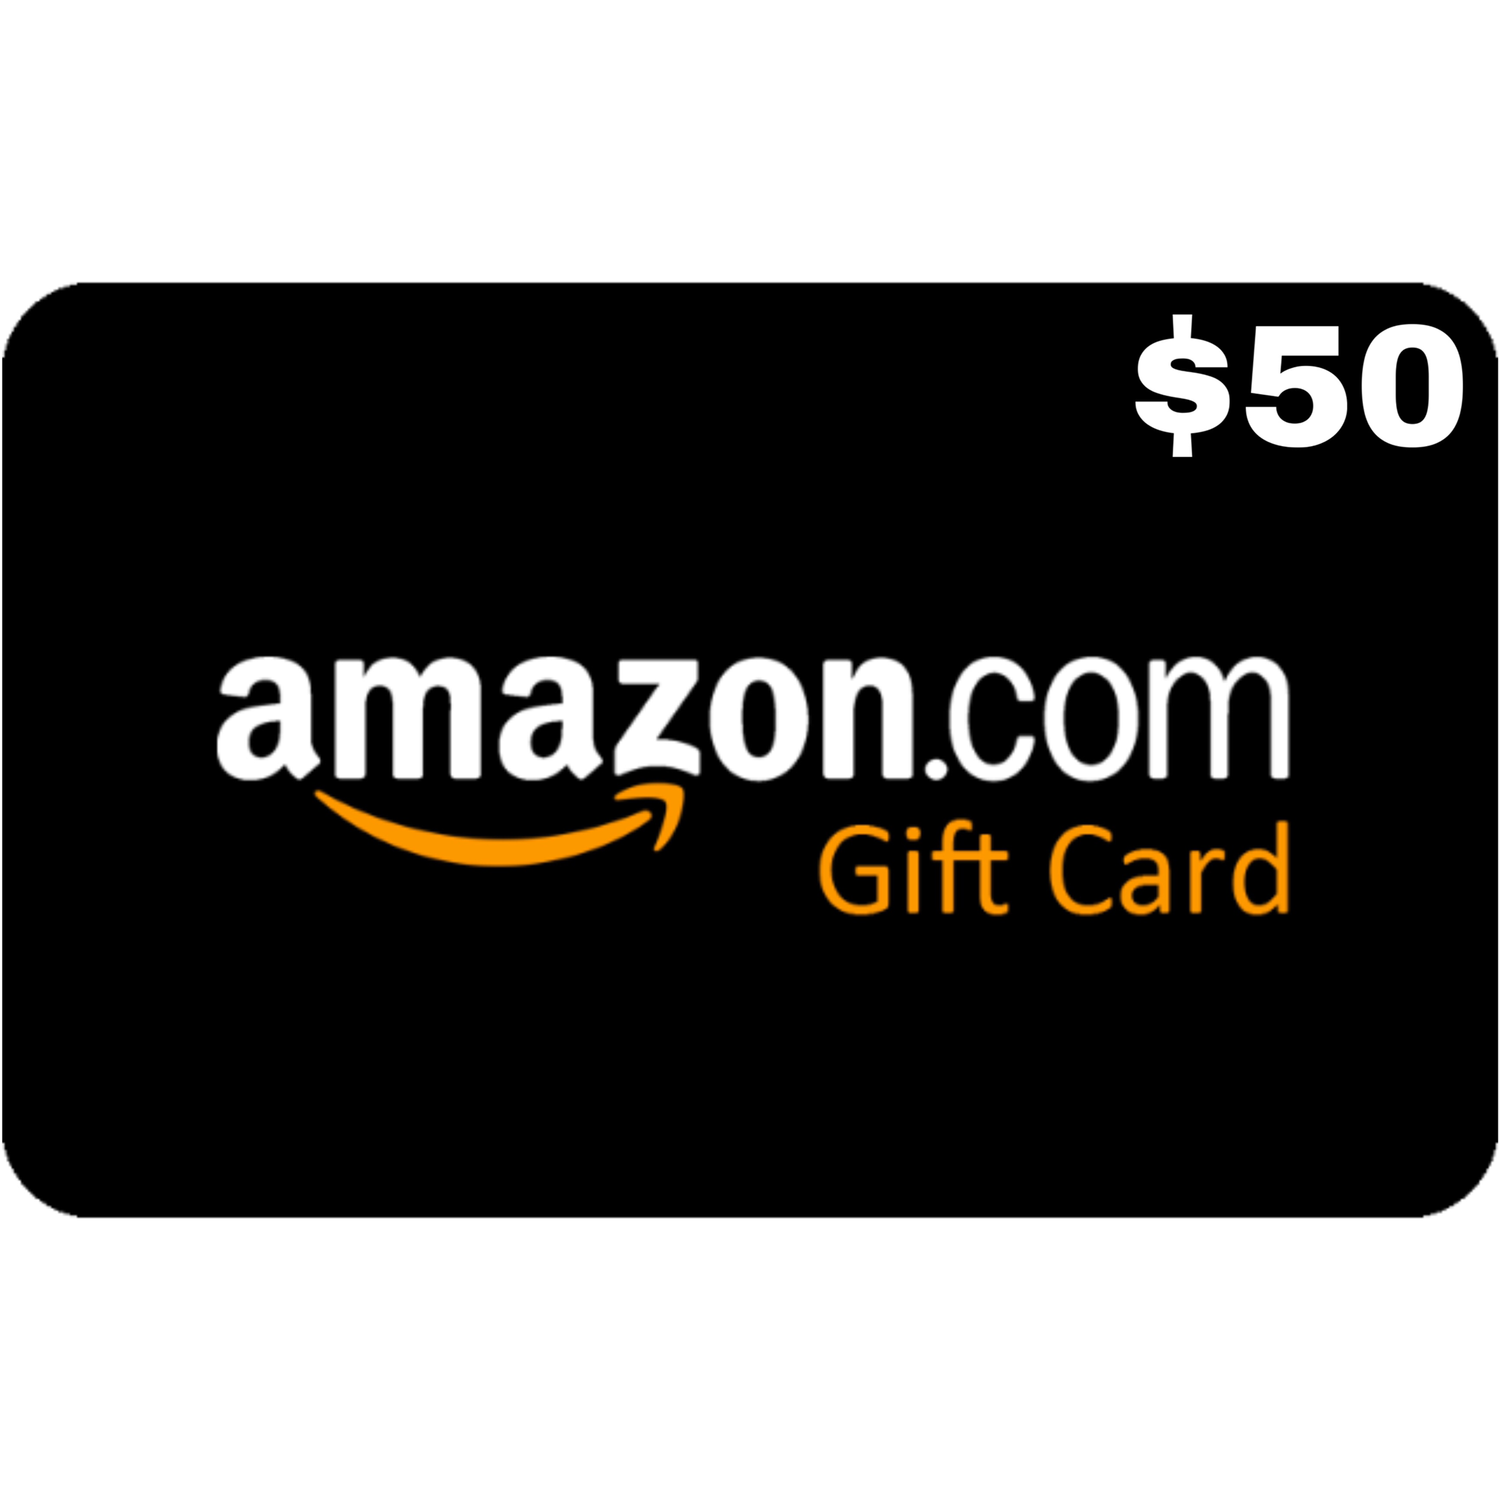 Amazon Gift Card US $50